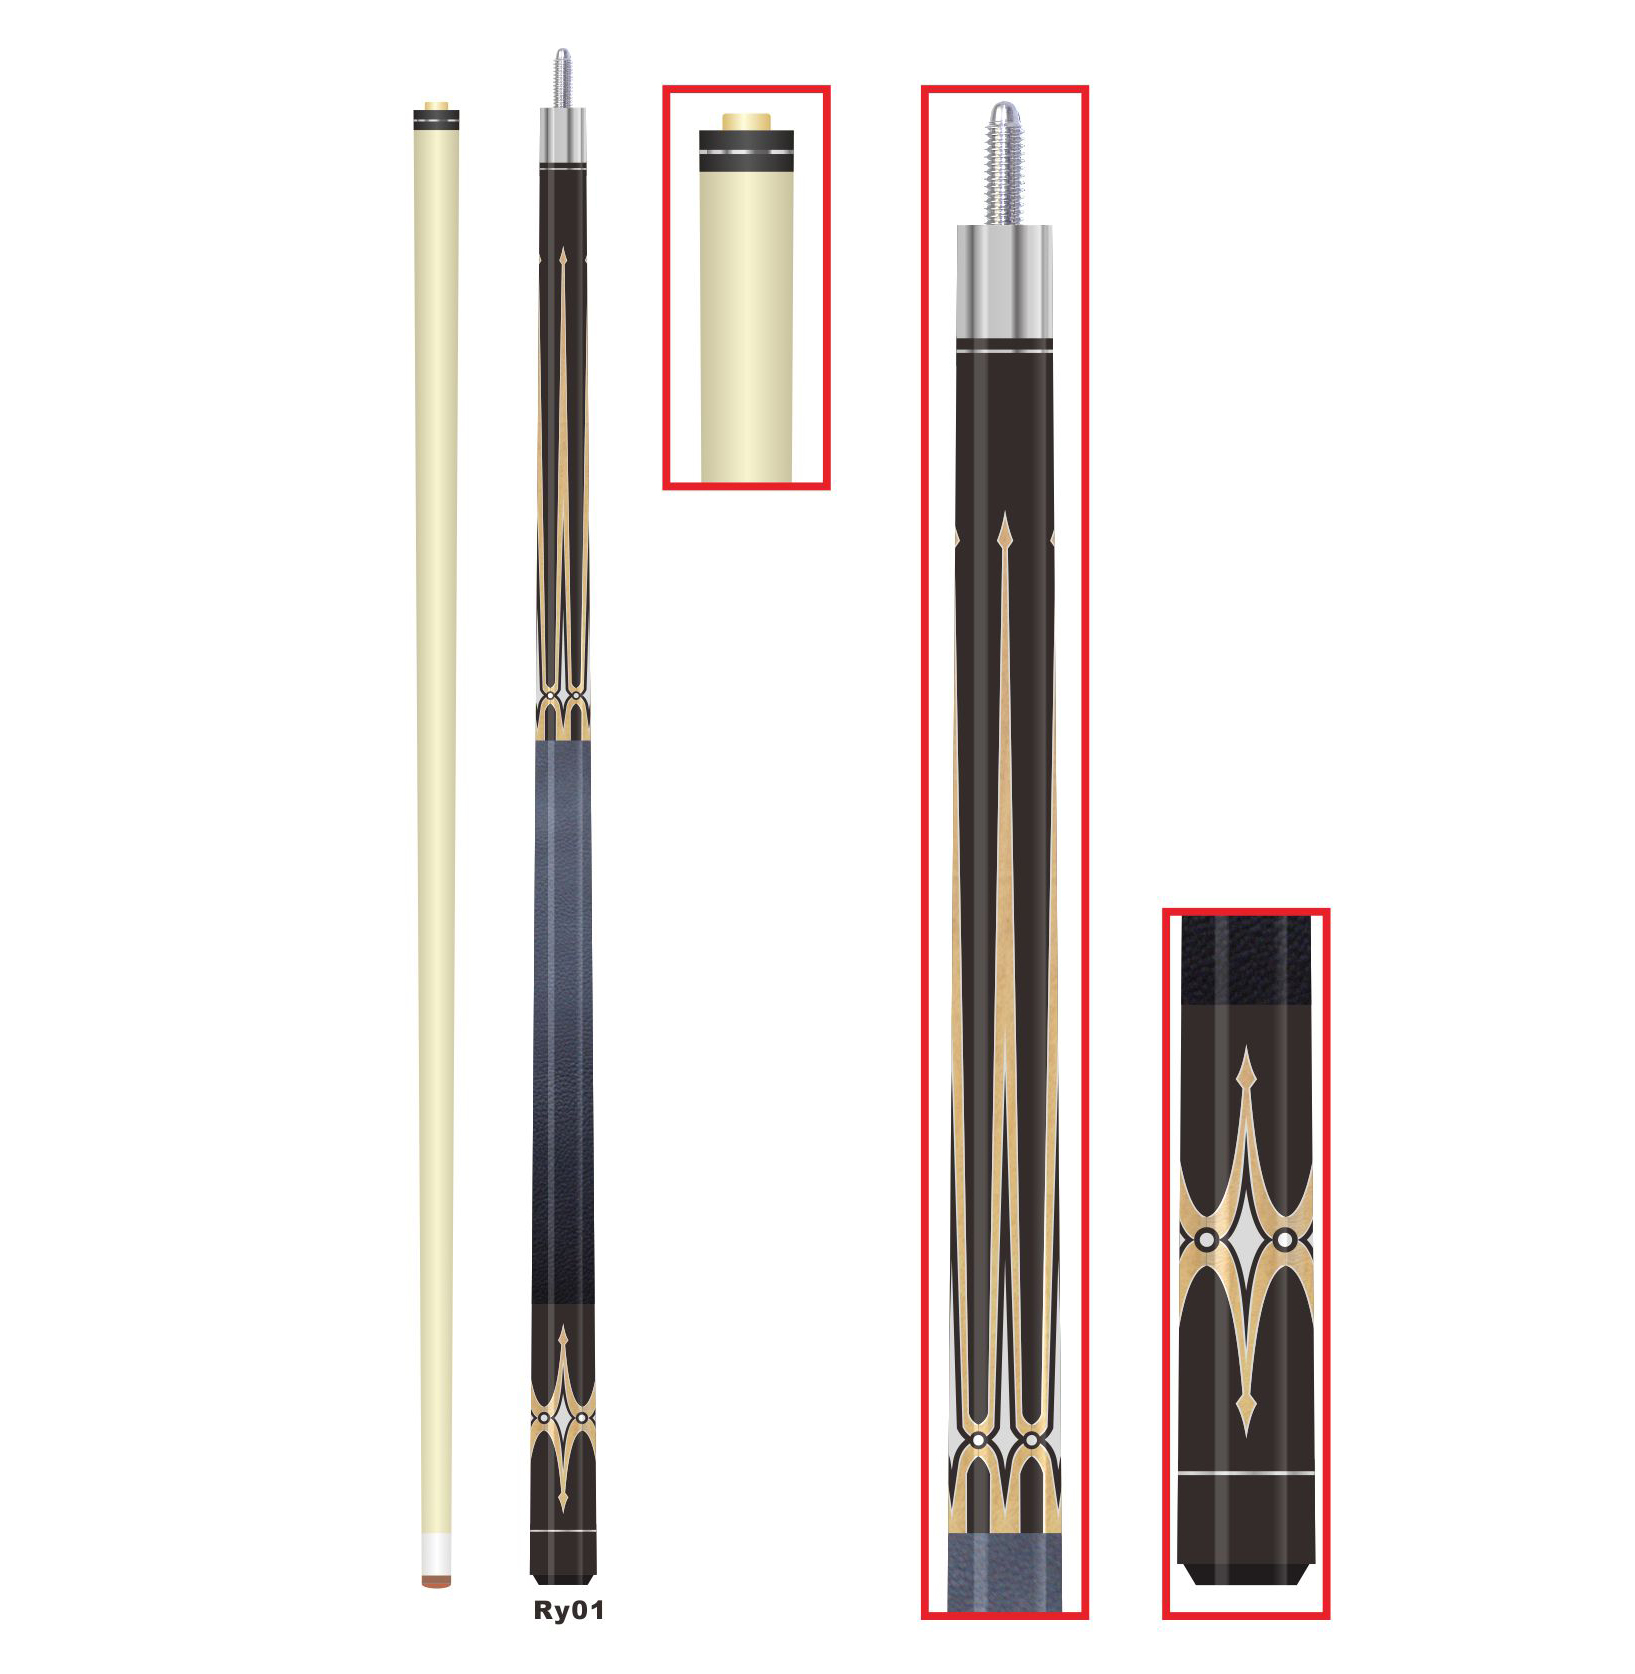 Billiard accessories for snooker cue, cue extension butt